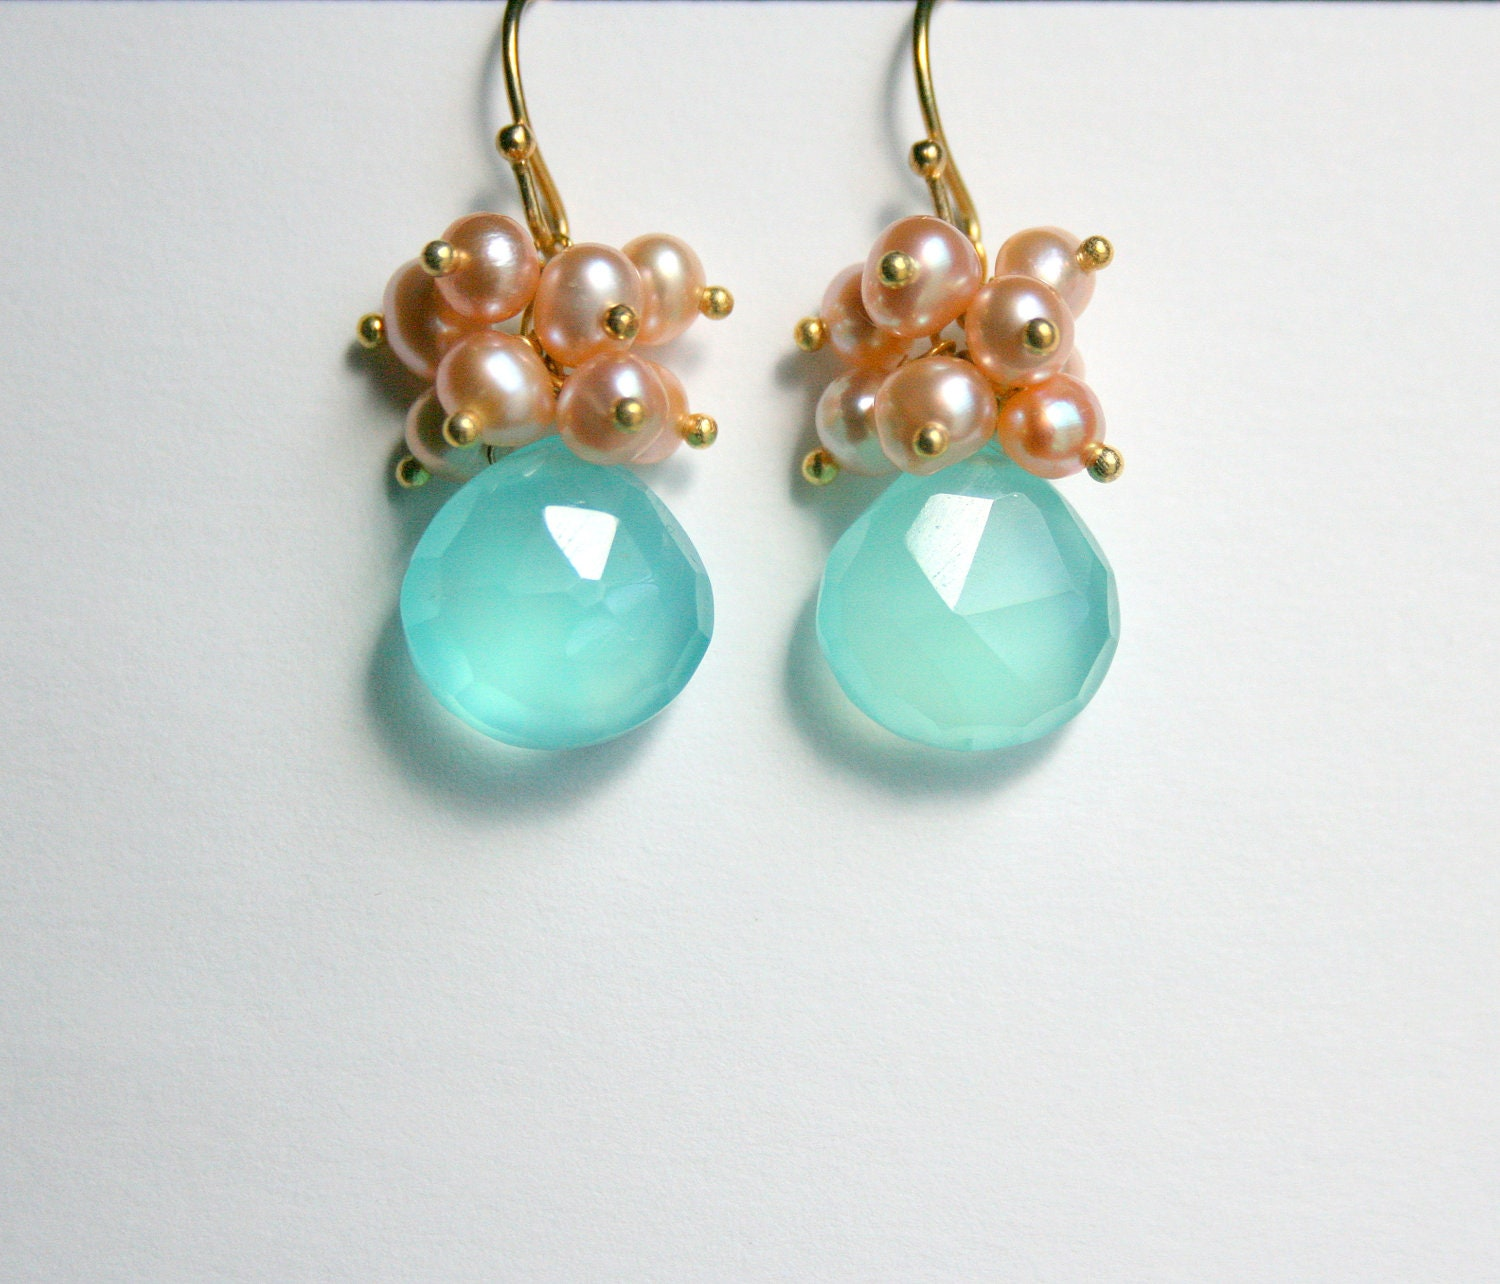 Aqua Teardrop Earrings, Peach Pearl Clusters, Gold Vermeil